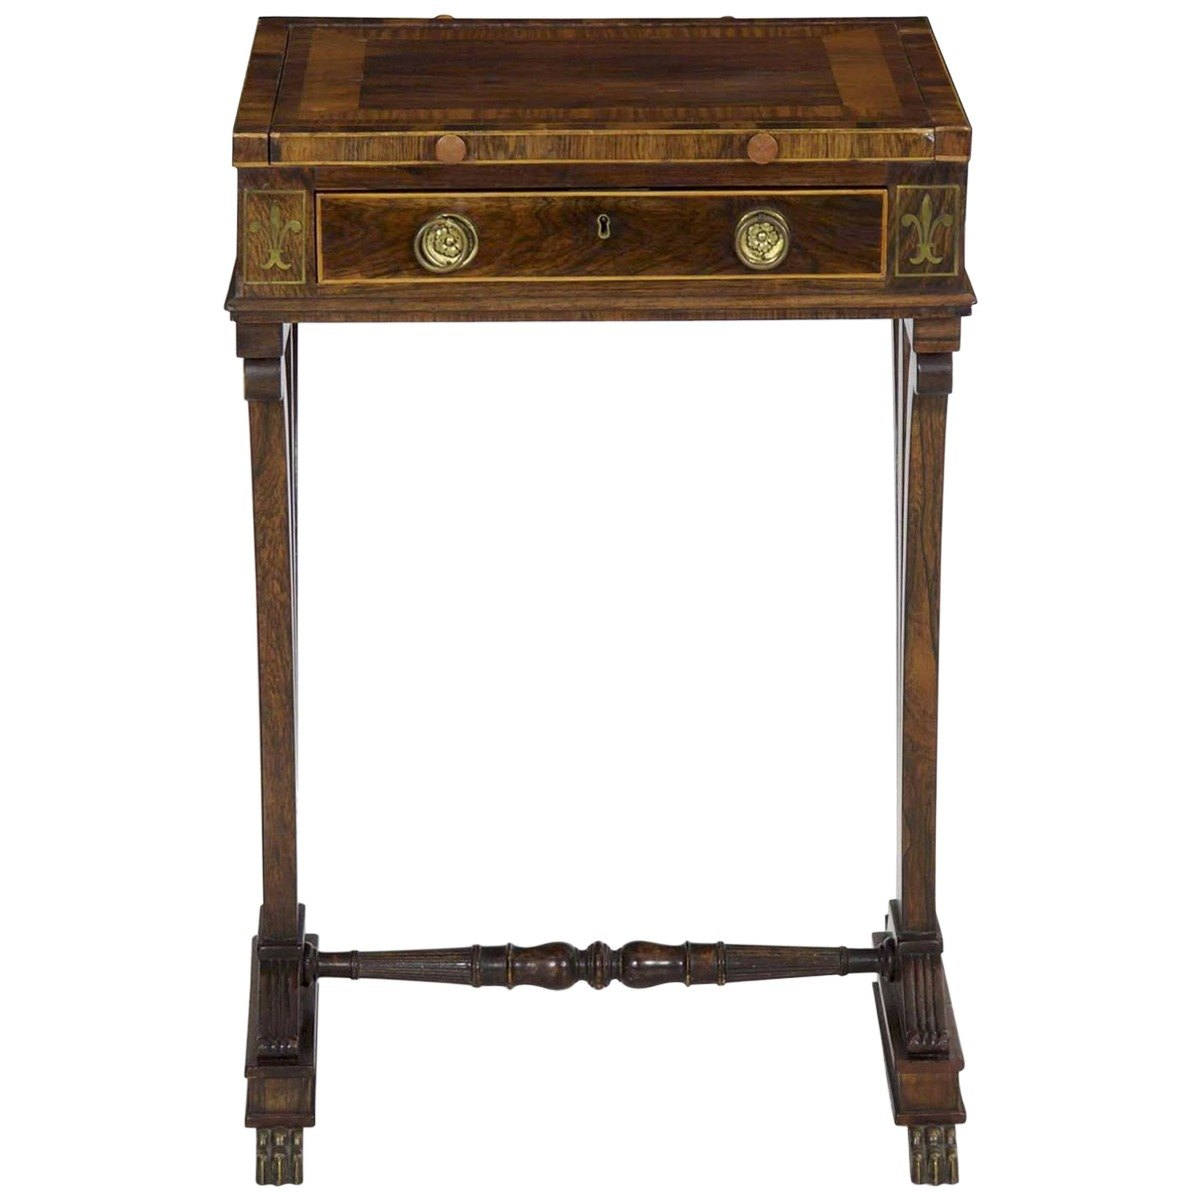 antique early century english george brass inlaid rosewood accent table front sotheby home room essentials desk ikea garden shelf huge outdoor umbrella grill work living sets grey